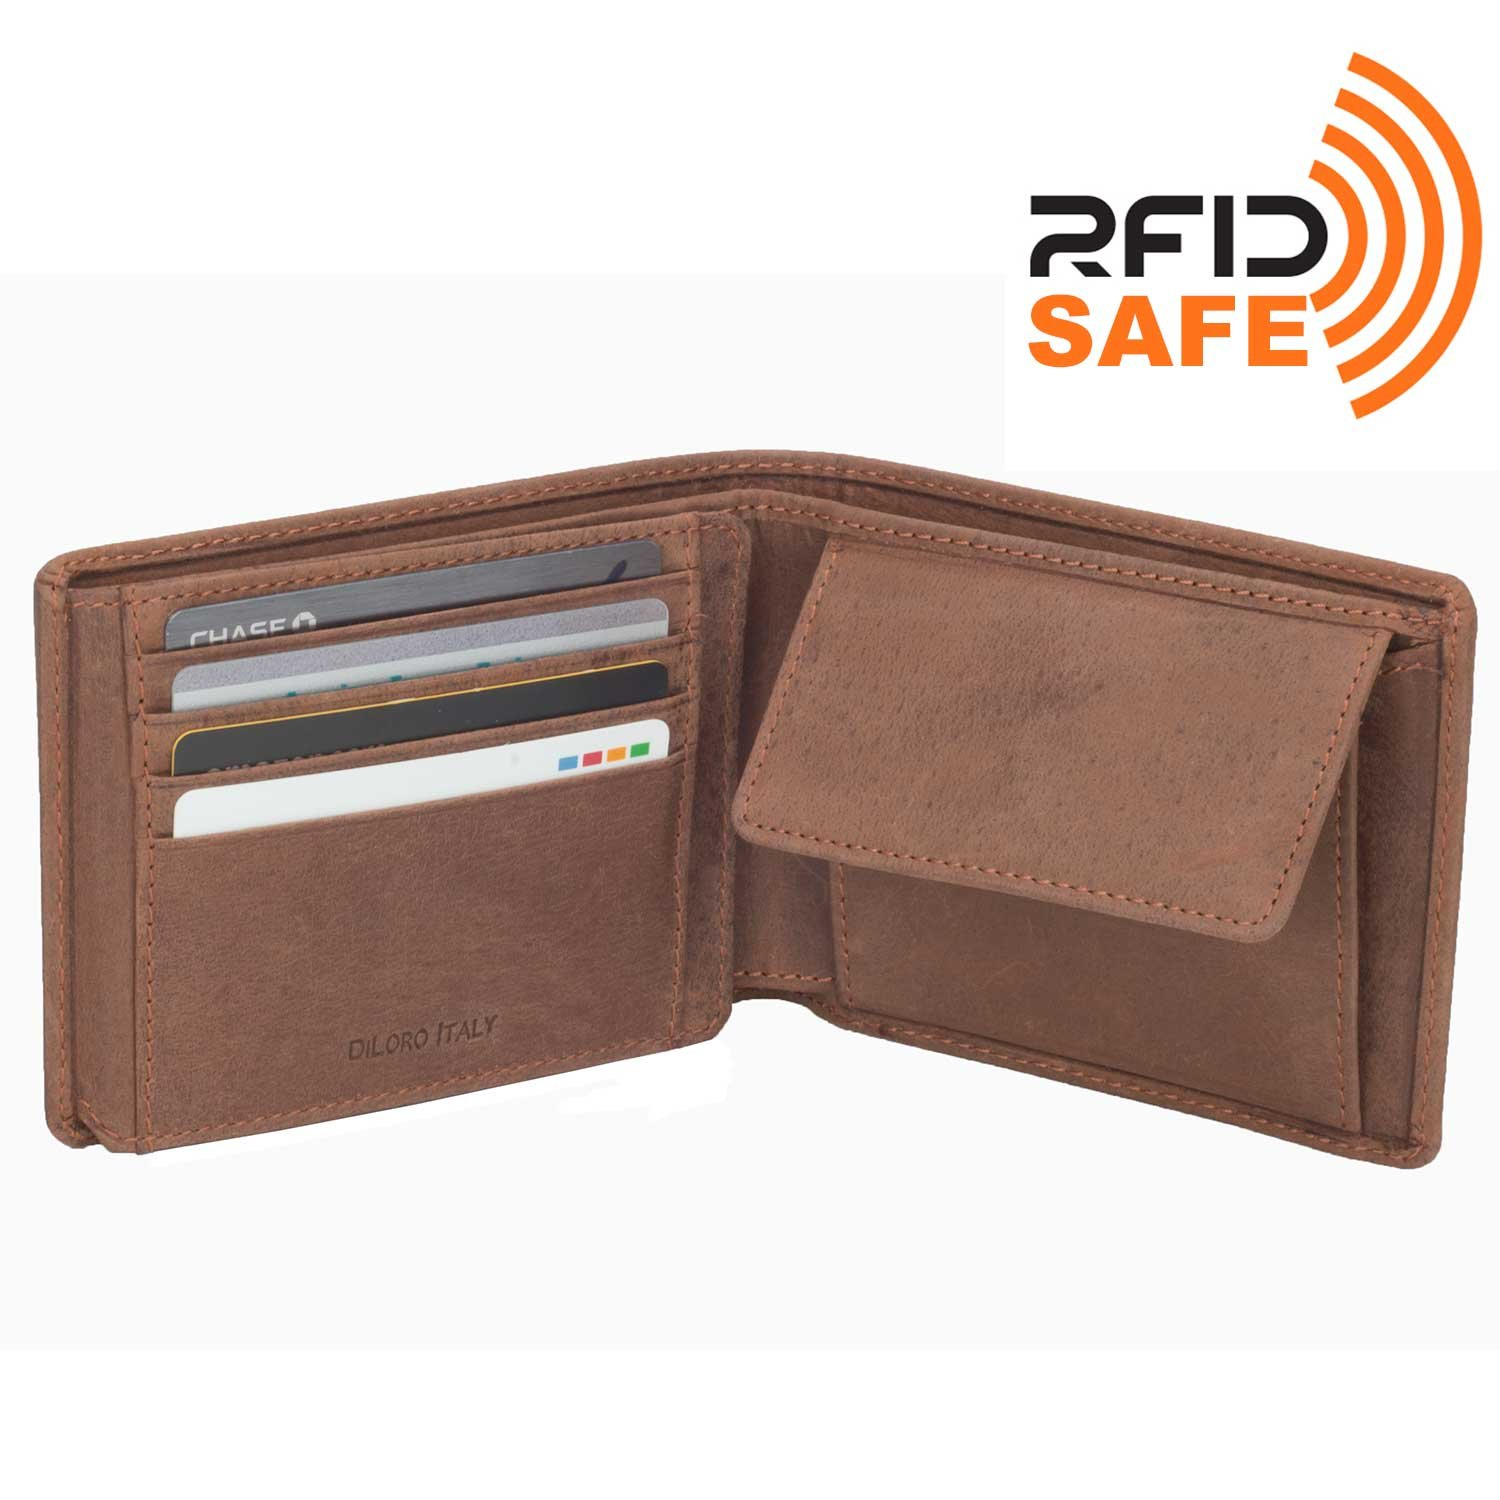 DiLoro Wallets for Men Bifold Flip ID Section Coin Compartment RFID Protection Full Grain Top Quality Vegetable Tanned Leather (Light Hunter Brown) by DiLoro (Image #3)